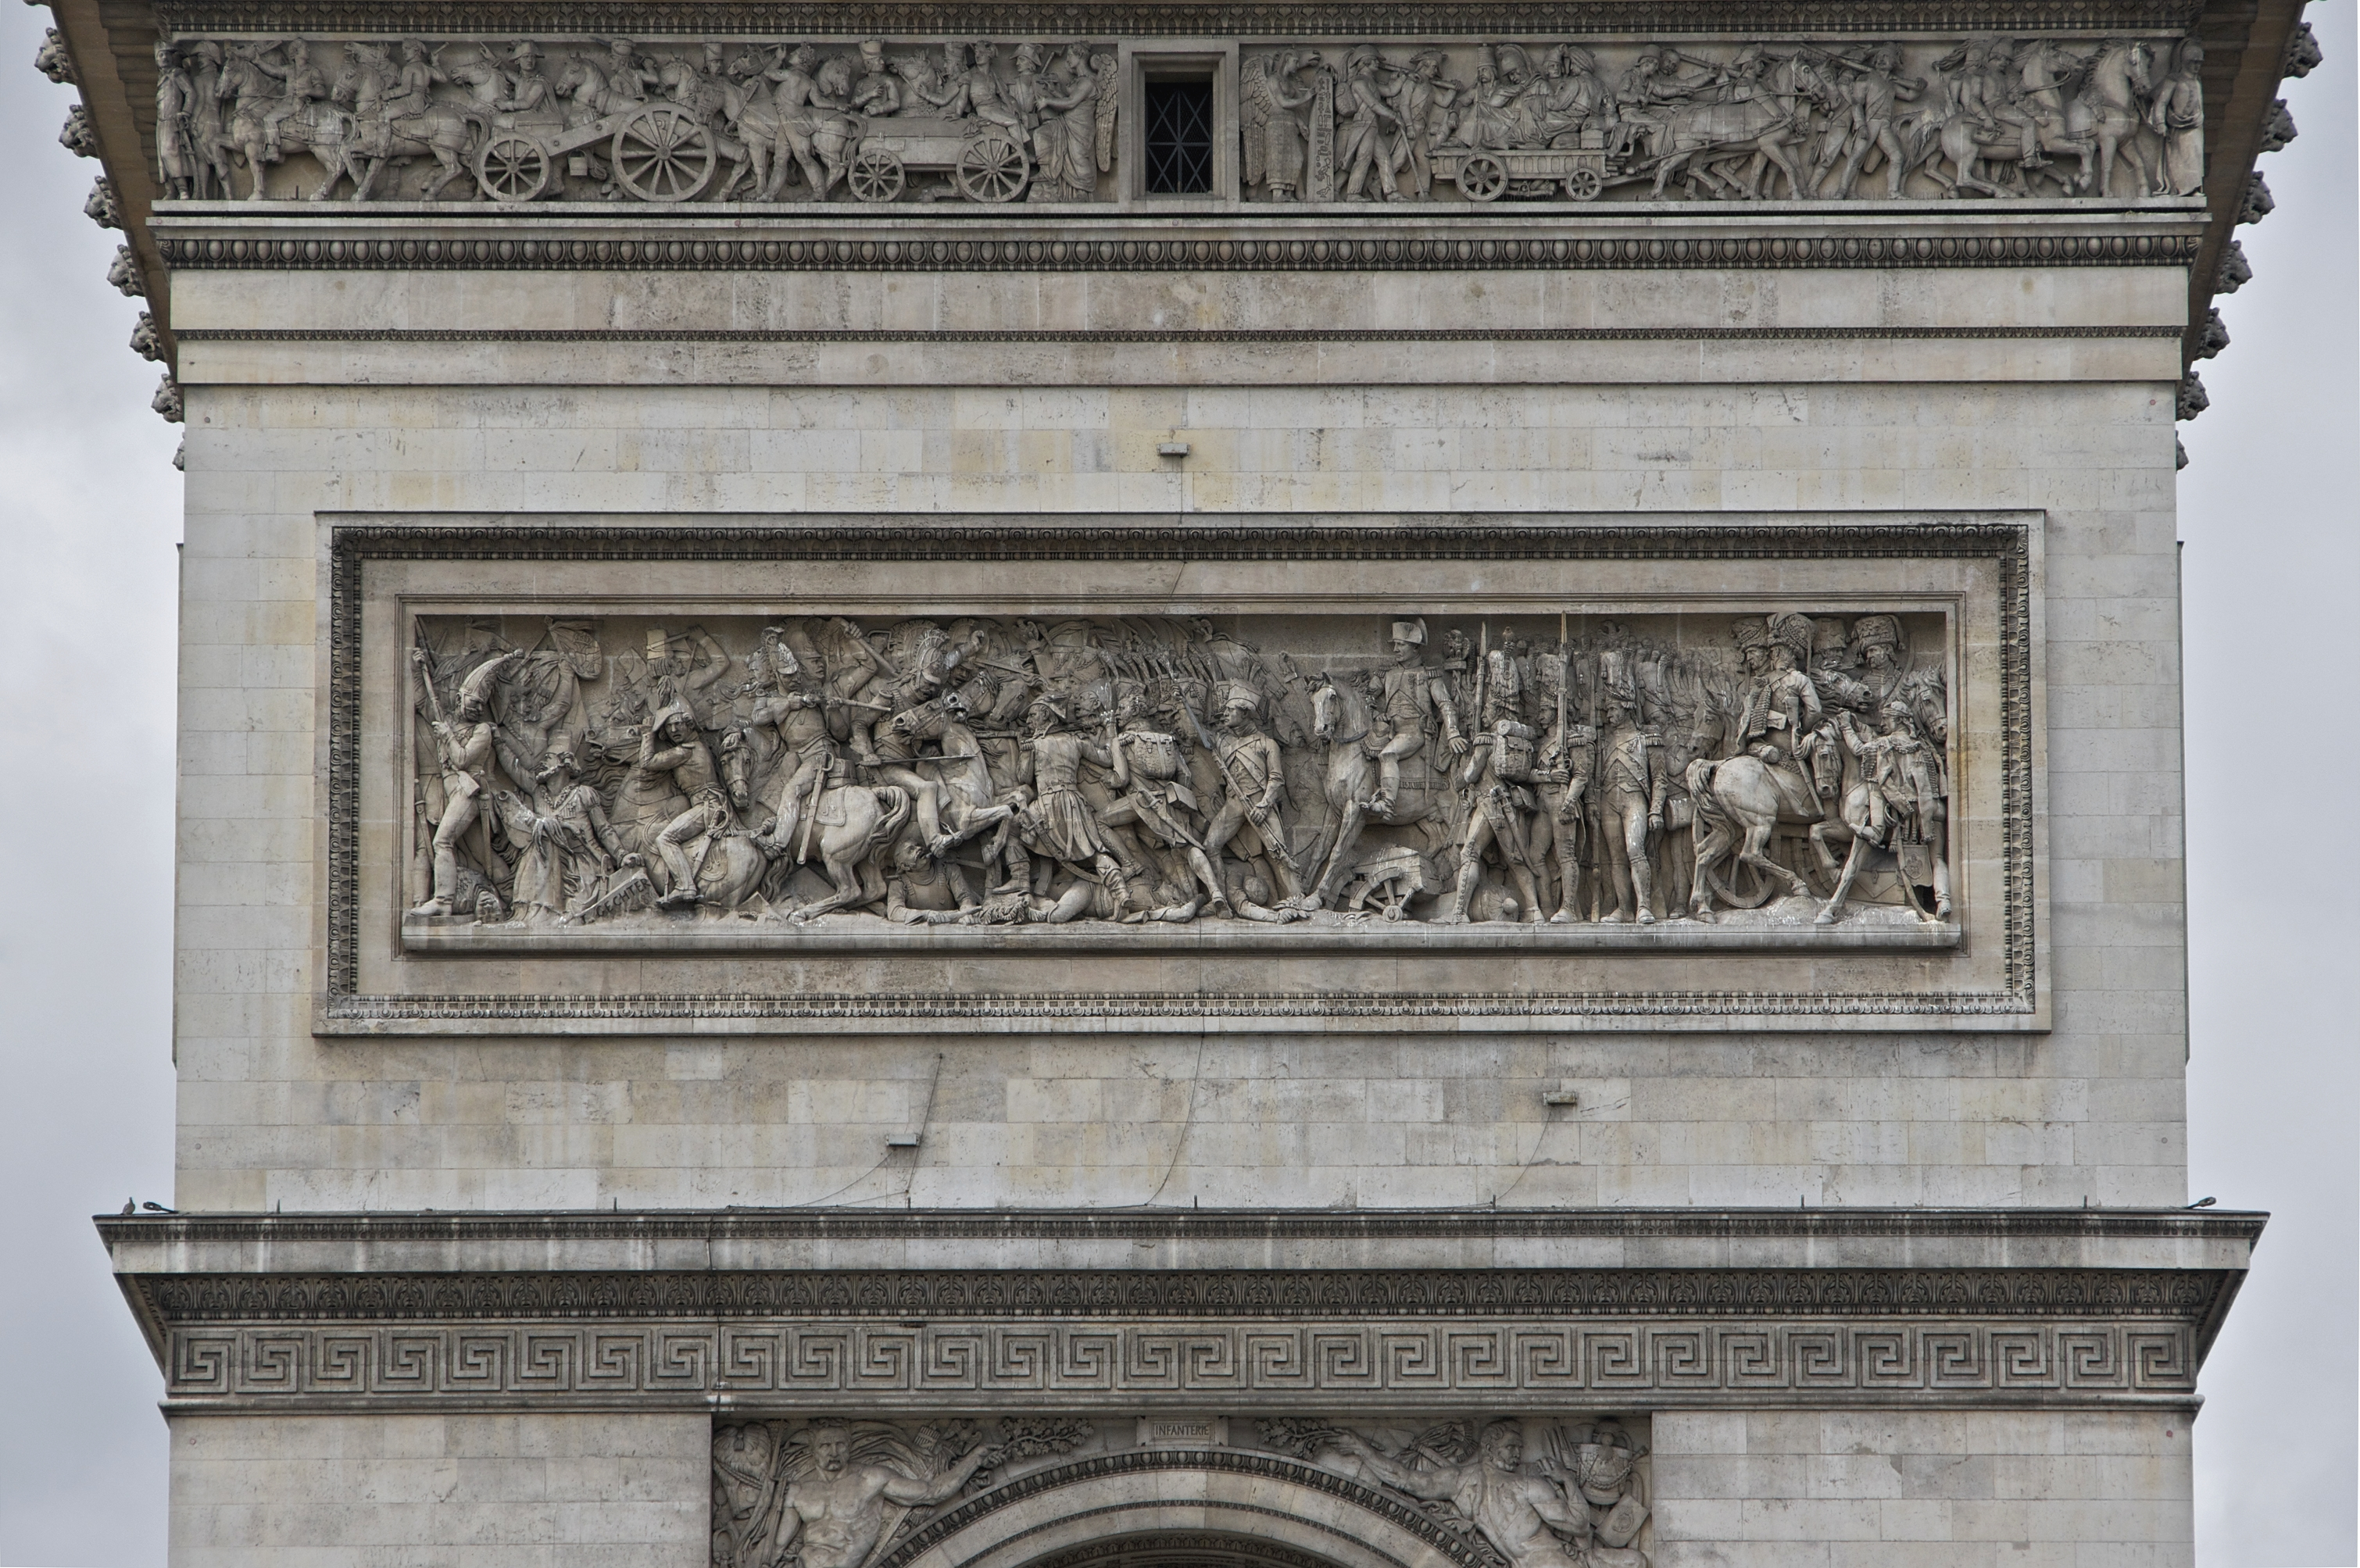 File:Relief nord arc triomphe Gechter jpg - Wikimedia Commons